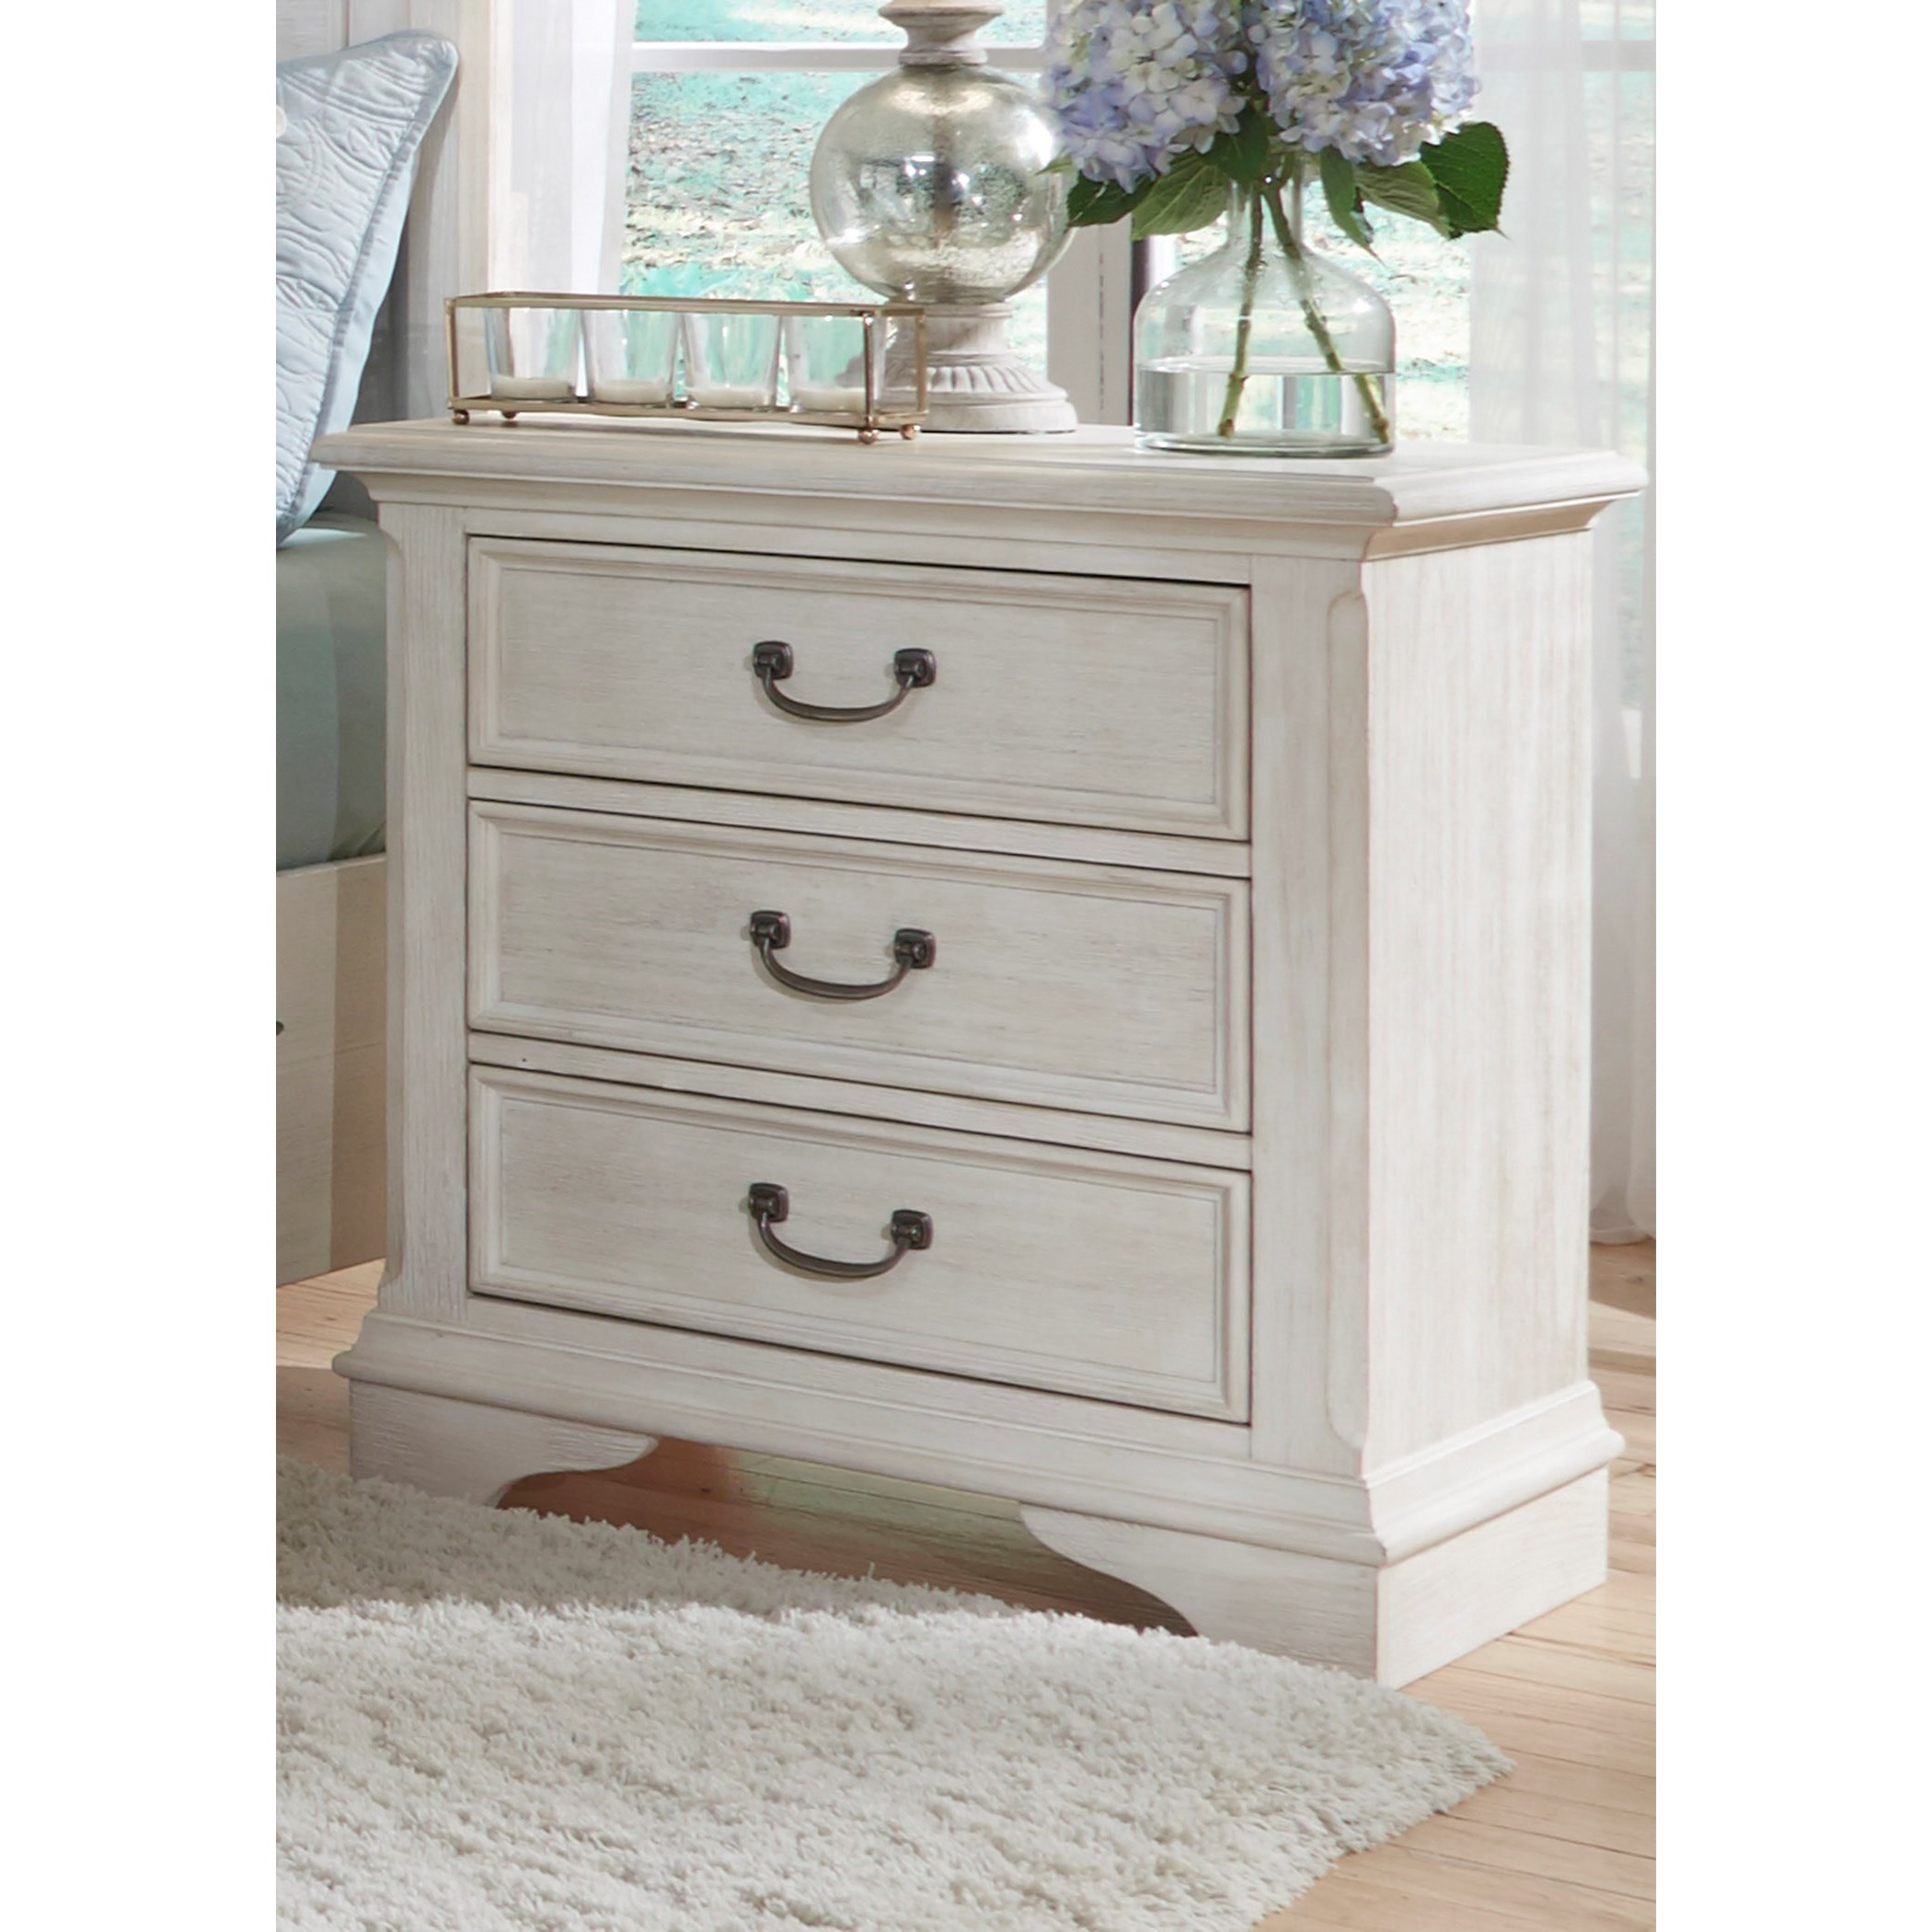 Liberty Furniture Bayside Bedroom 3 Drawer Night Stand - Item Number: 249-BR61